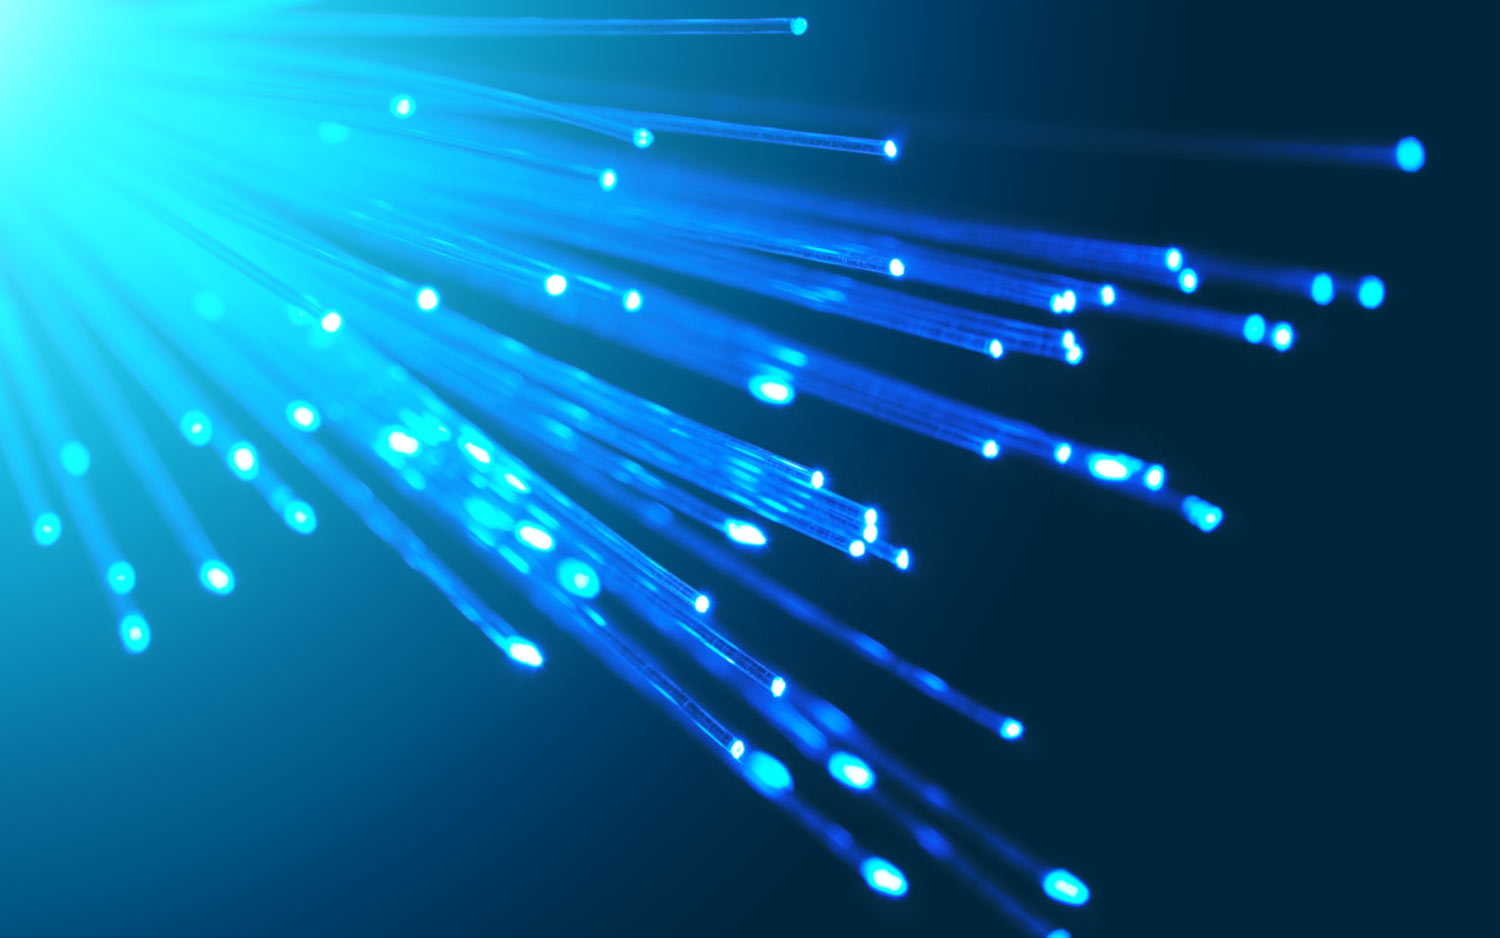 Phase one of Zambian broadband network live